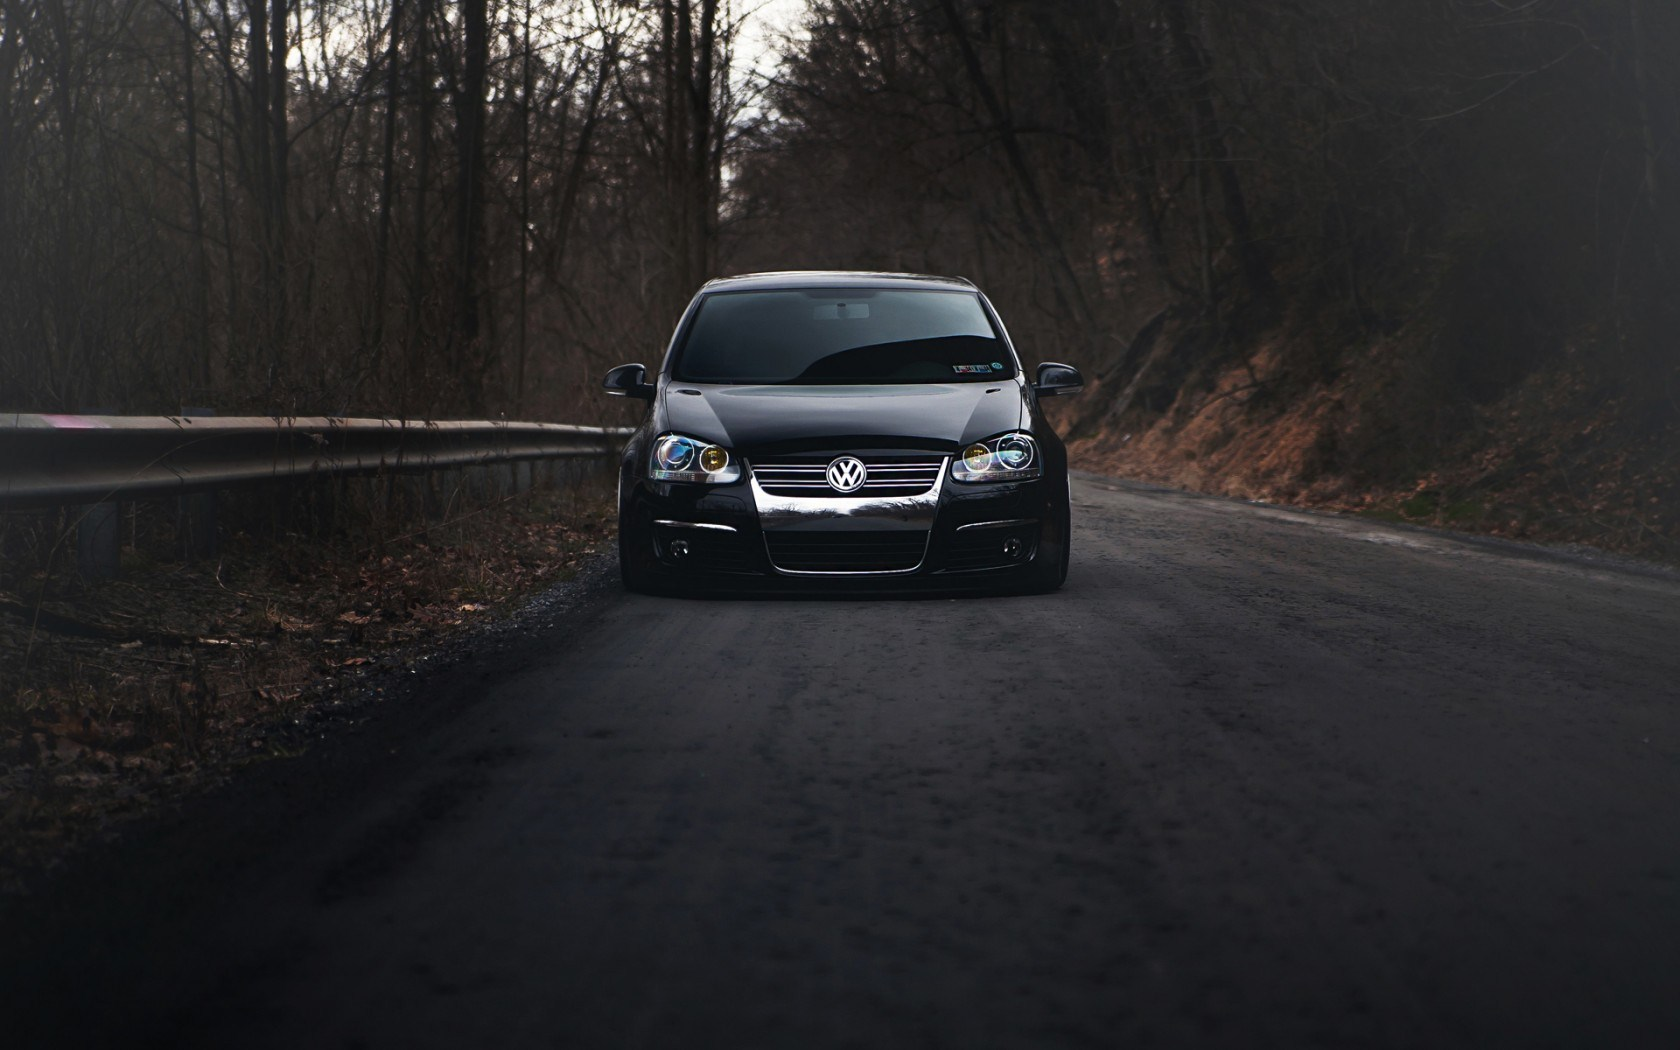 """Download the following Stunning Volkswagen Wallpaper 23450 by clicking the orange button positioned underneath the """"Download Wallpaper"""" section."""